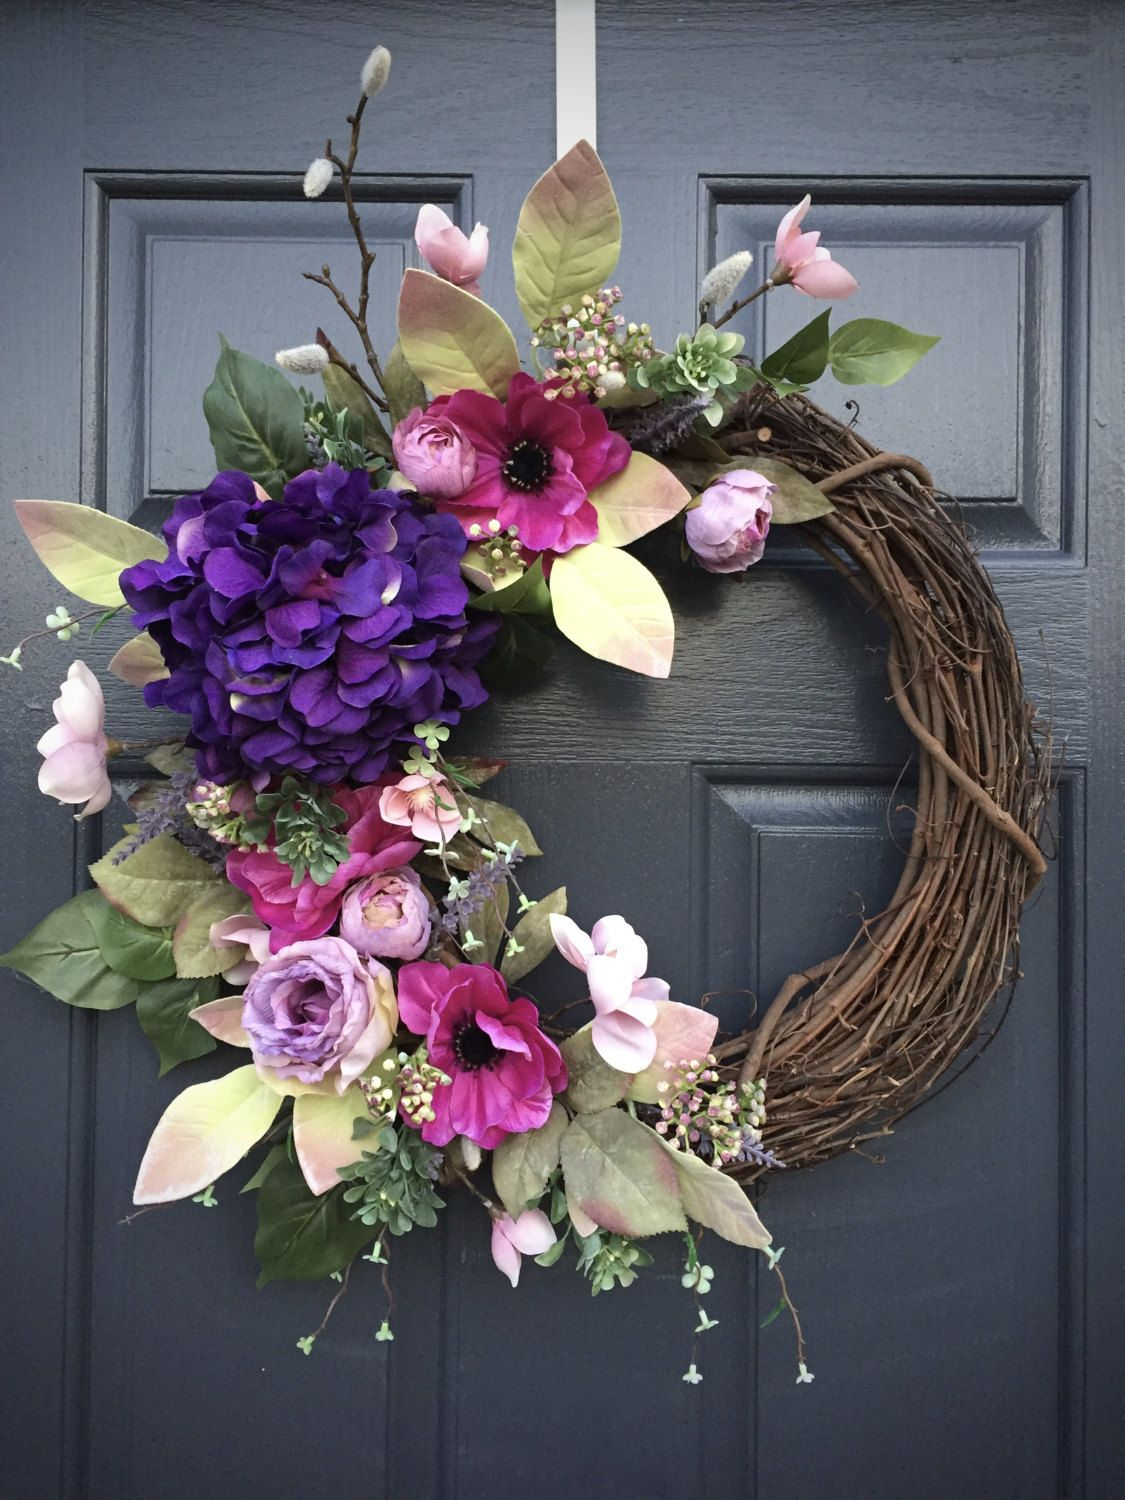 Spring Wreaths, Spring Door Wreath, Purple Wreath, Hydrangea Wreaths, Purple Hydrangeas, Purple Green, Gift For Her, Summer Decor, Pretty by WreathsByRebeccaB on Etsy